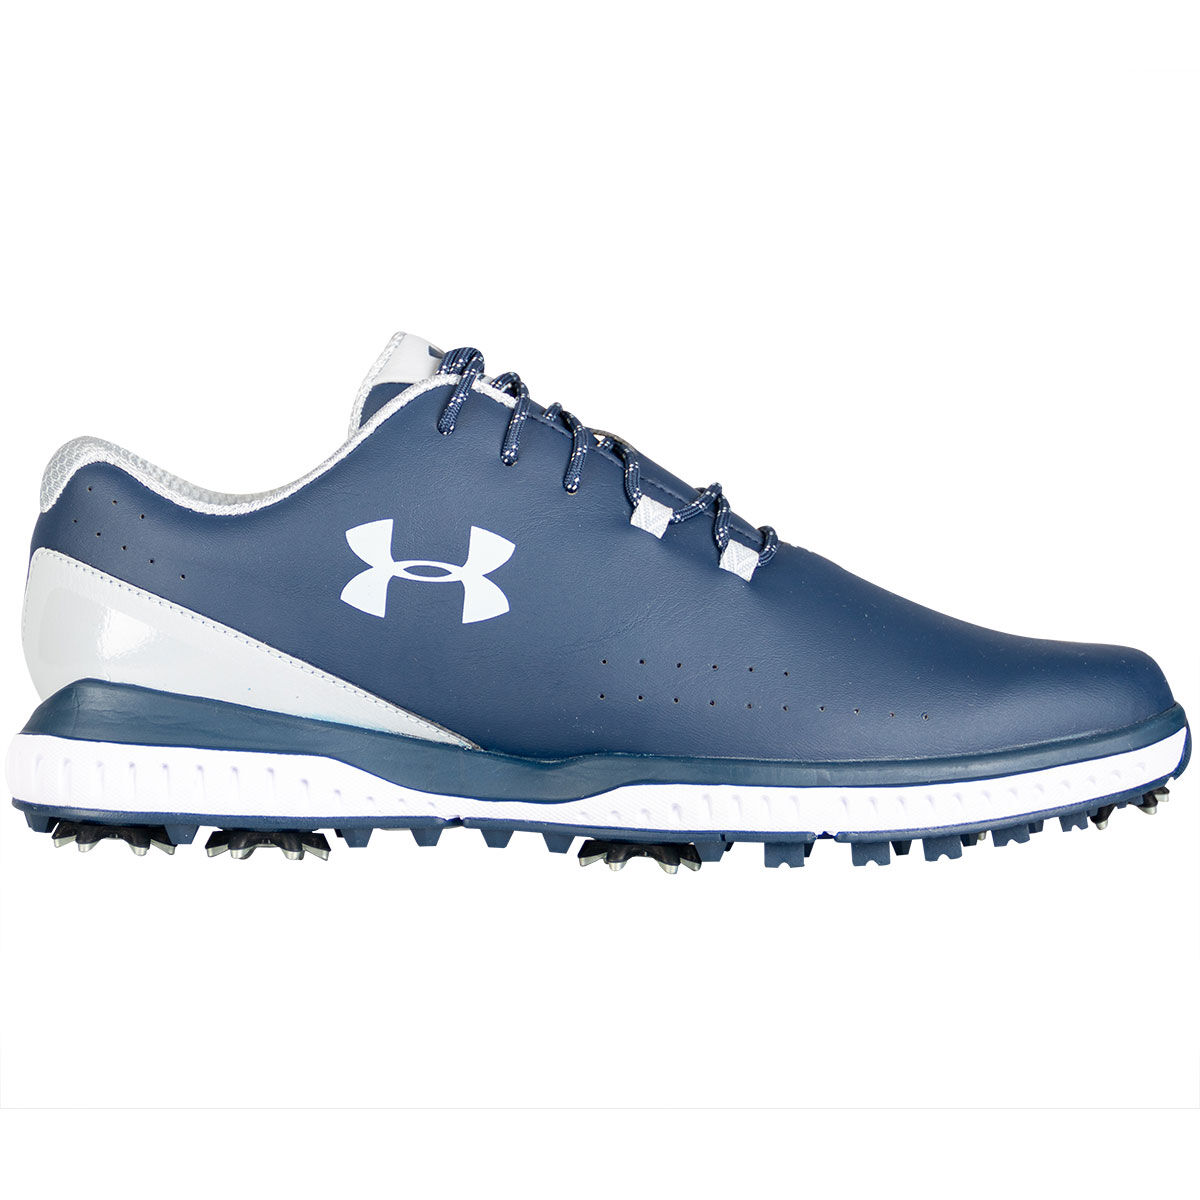 Spiked Golf Shoes | Men's Spiked Golf